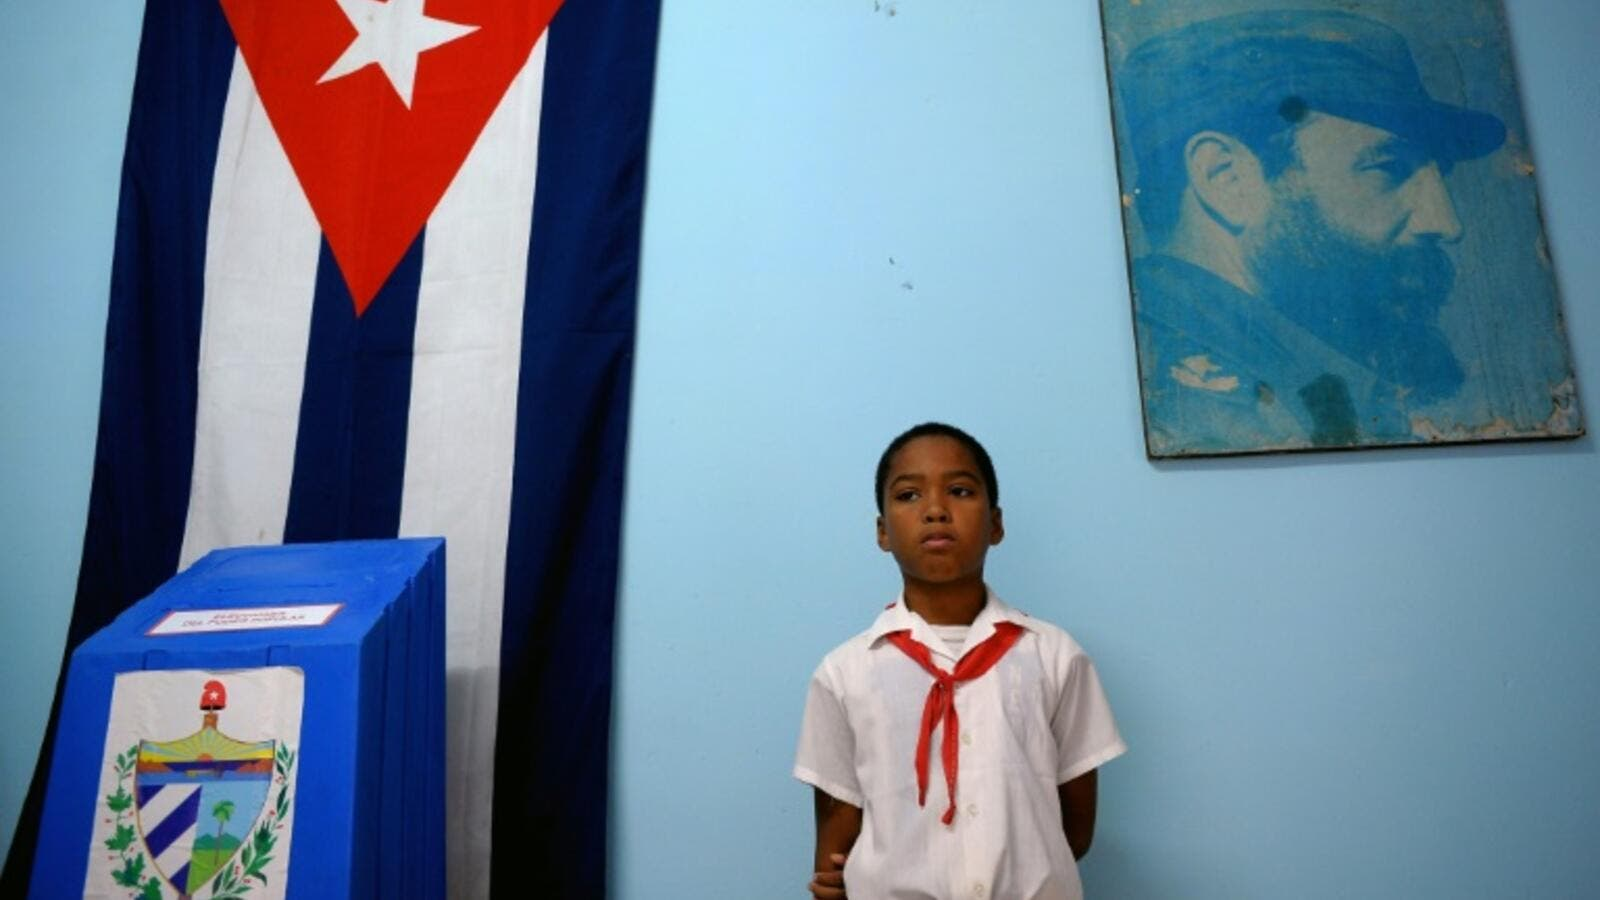 A schoolboy stands at a polling station in Havana during elections (AFP/File Photo)